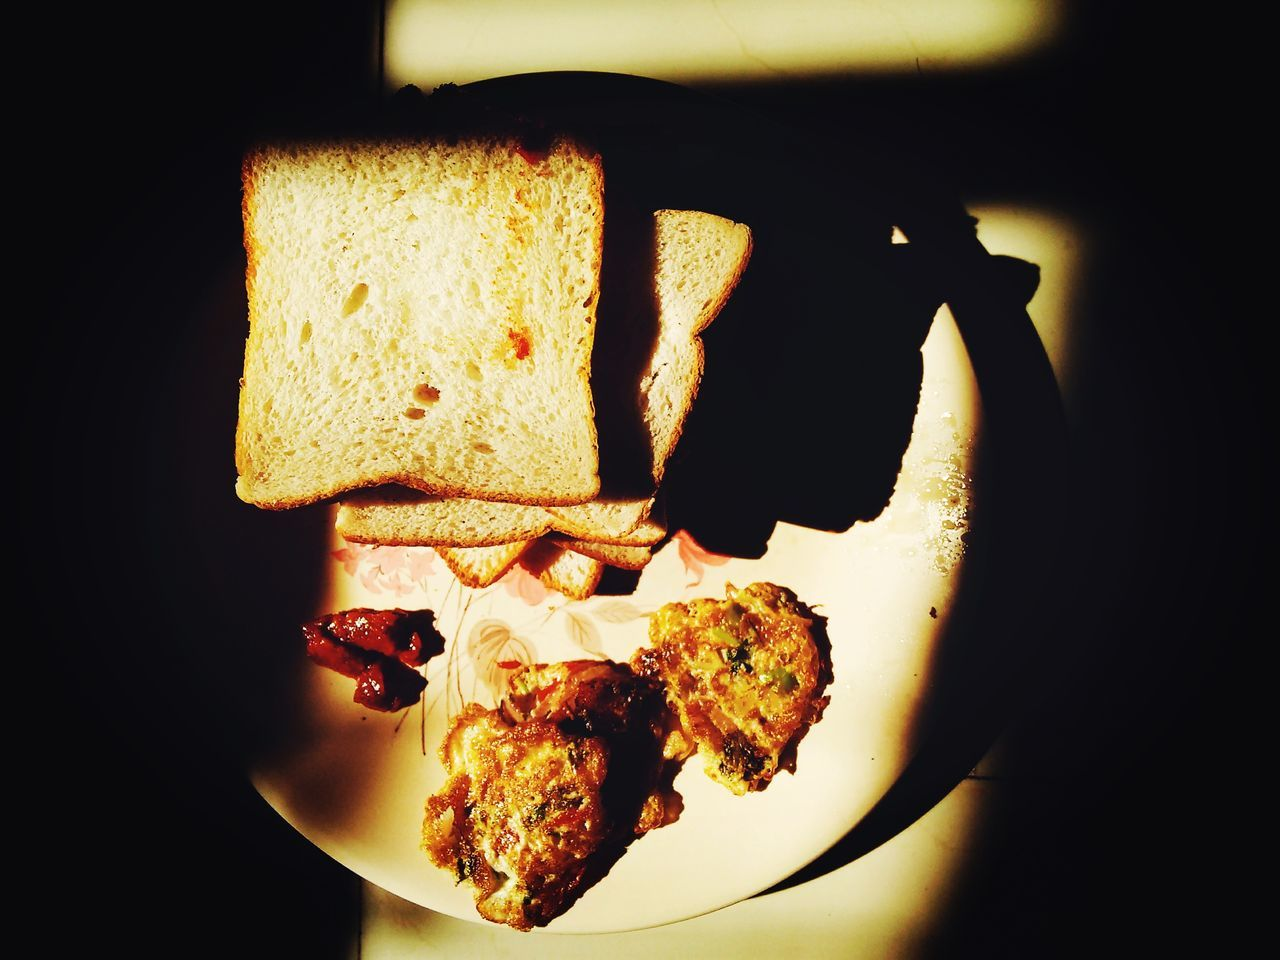 Breakfast with the perfect lights. Light Breakfast Bread Omlet Schezwan Chutney Mobilephotography Motog2 Taking Photos